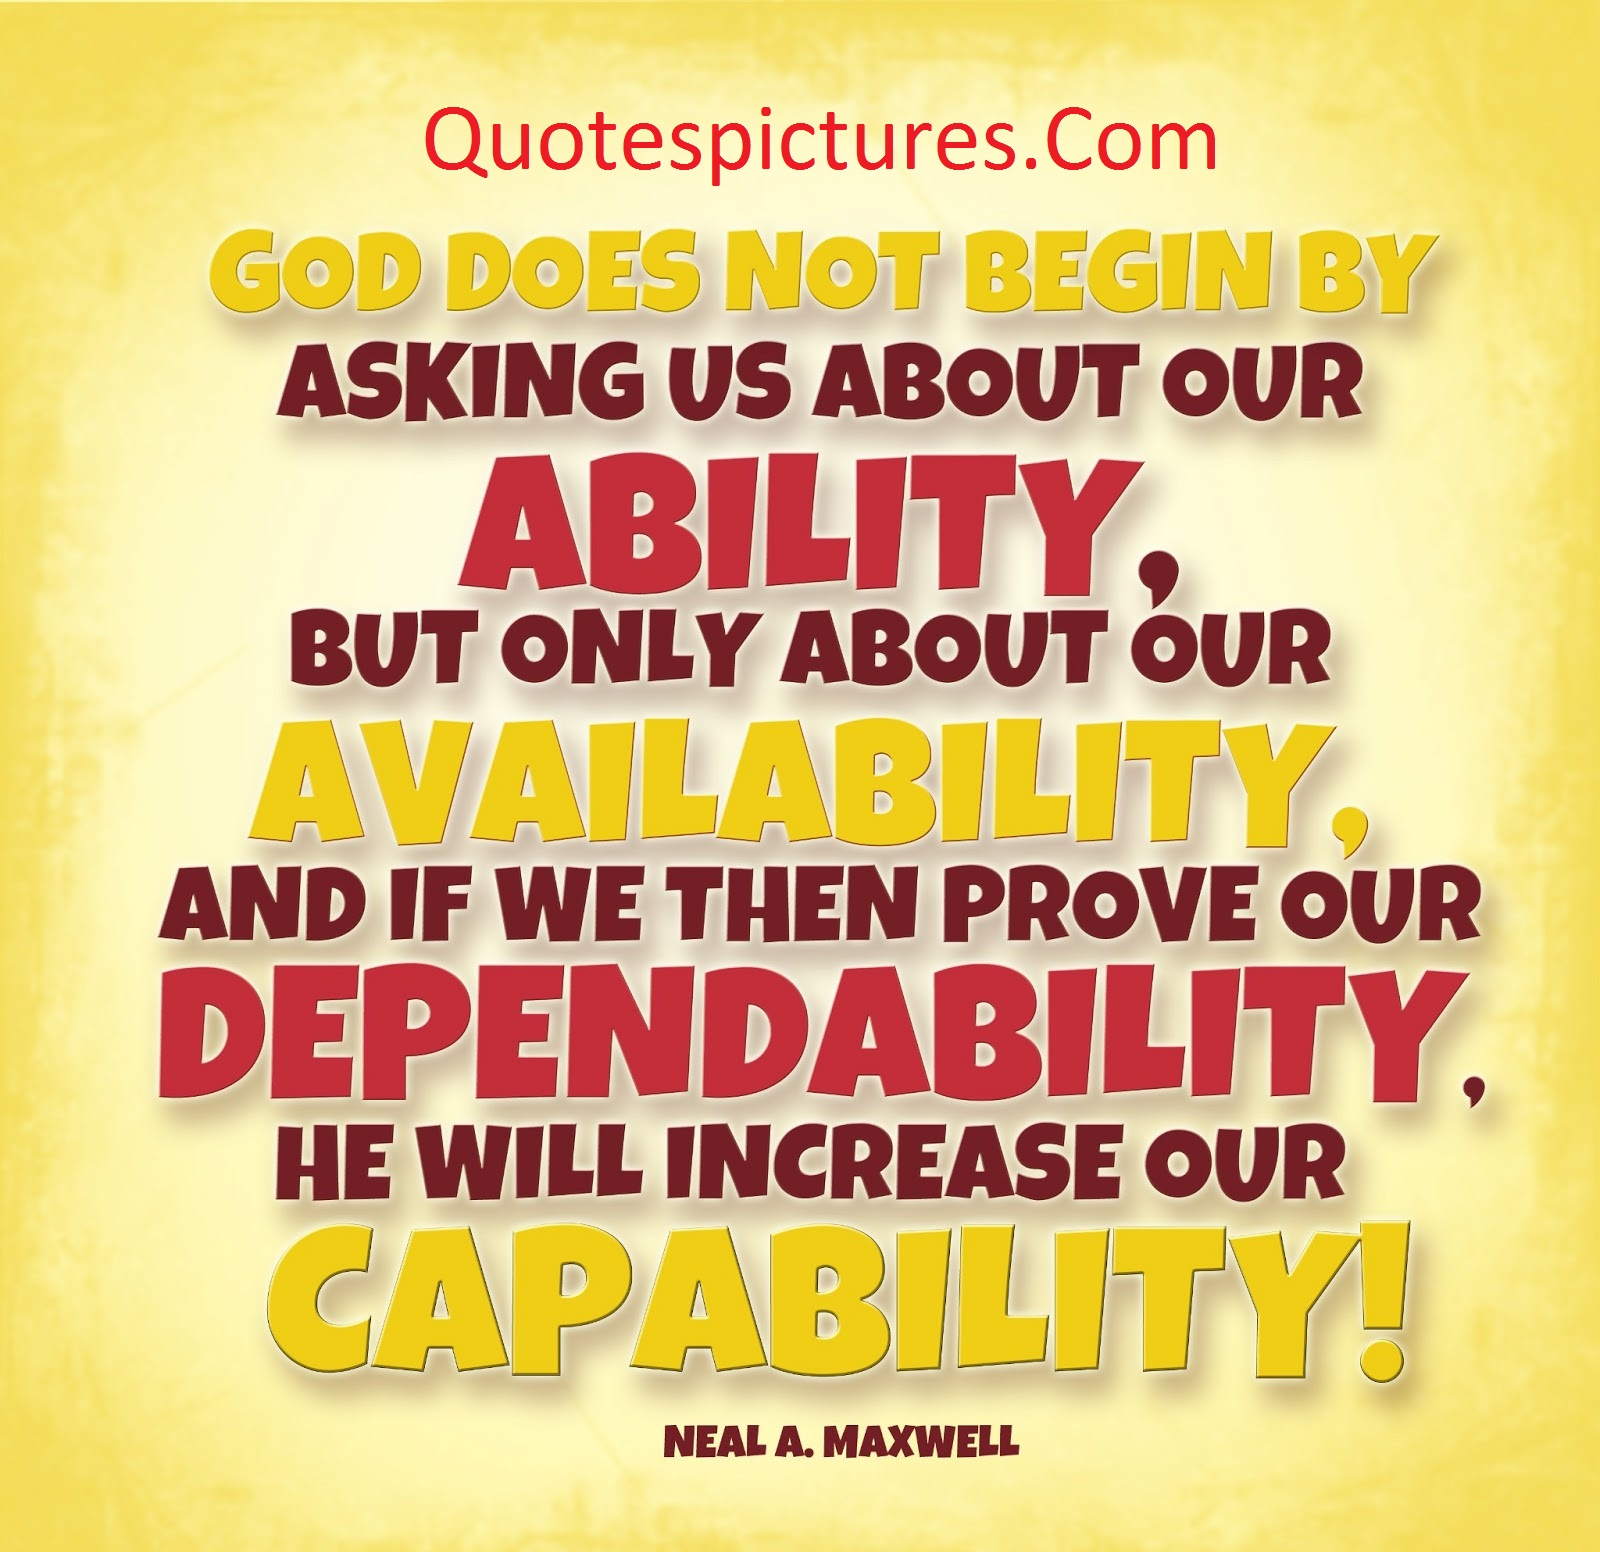 Ability Qutoes -  Ability Increase Our Capability By Neal.A. Maxwell